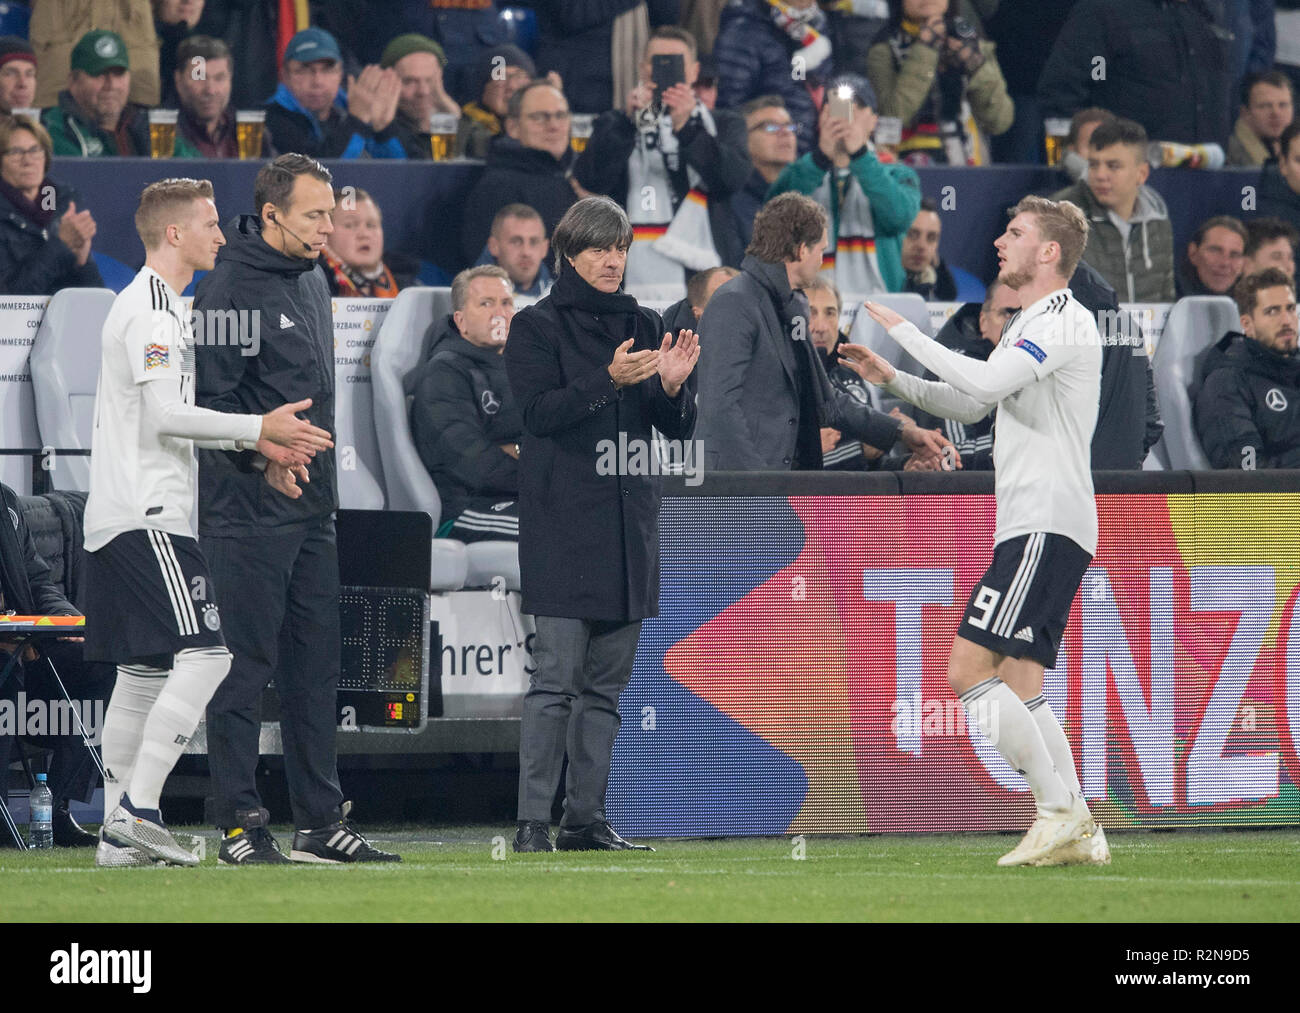 Replacement Timo WERNER r. (GER) walks for Marco REUS l. (GER), Joachim 'Jogi' LOEW (LOW) (coach / Bundescoach, GER) applauds applause, Substitutions, Football Laender match, Nations League, Germany (GER) - Netherlands (NED) 2: 2, 19/11/2018 in Gelsenkirchen / Germany.   usage worldwide - Stock Image